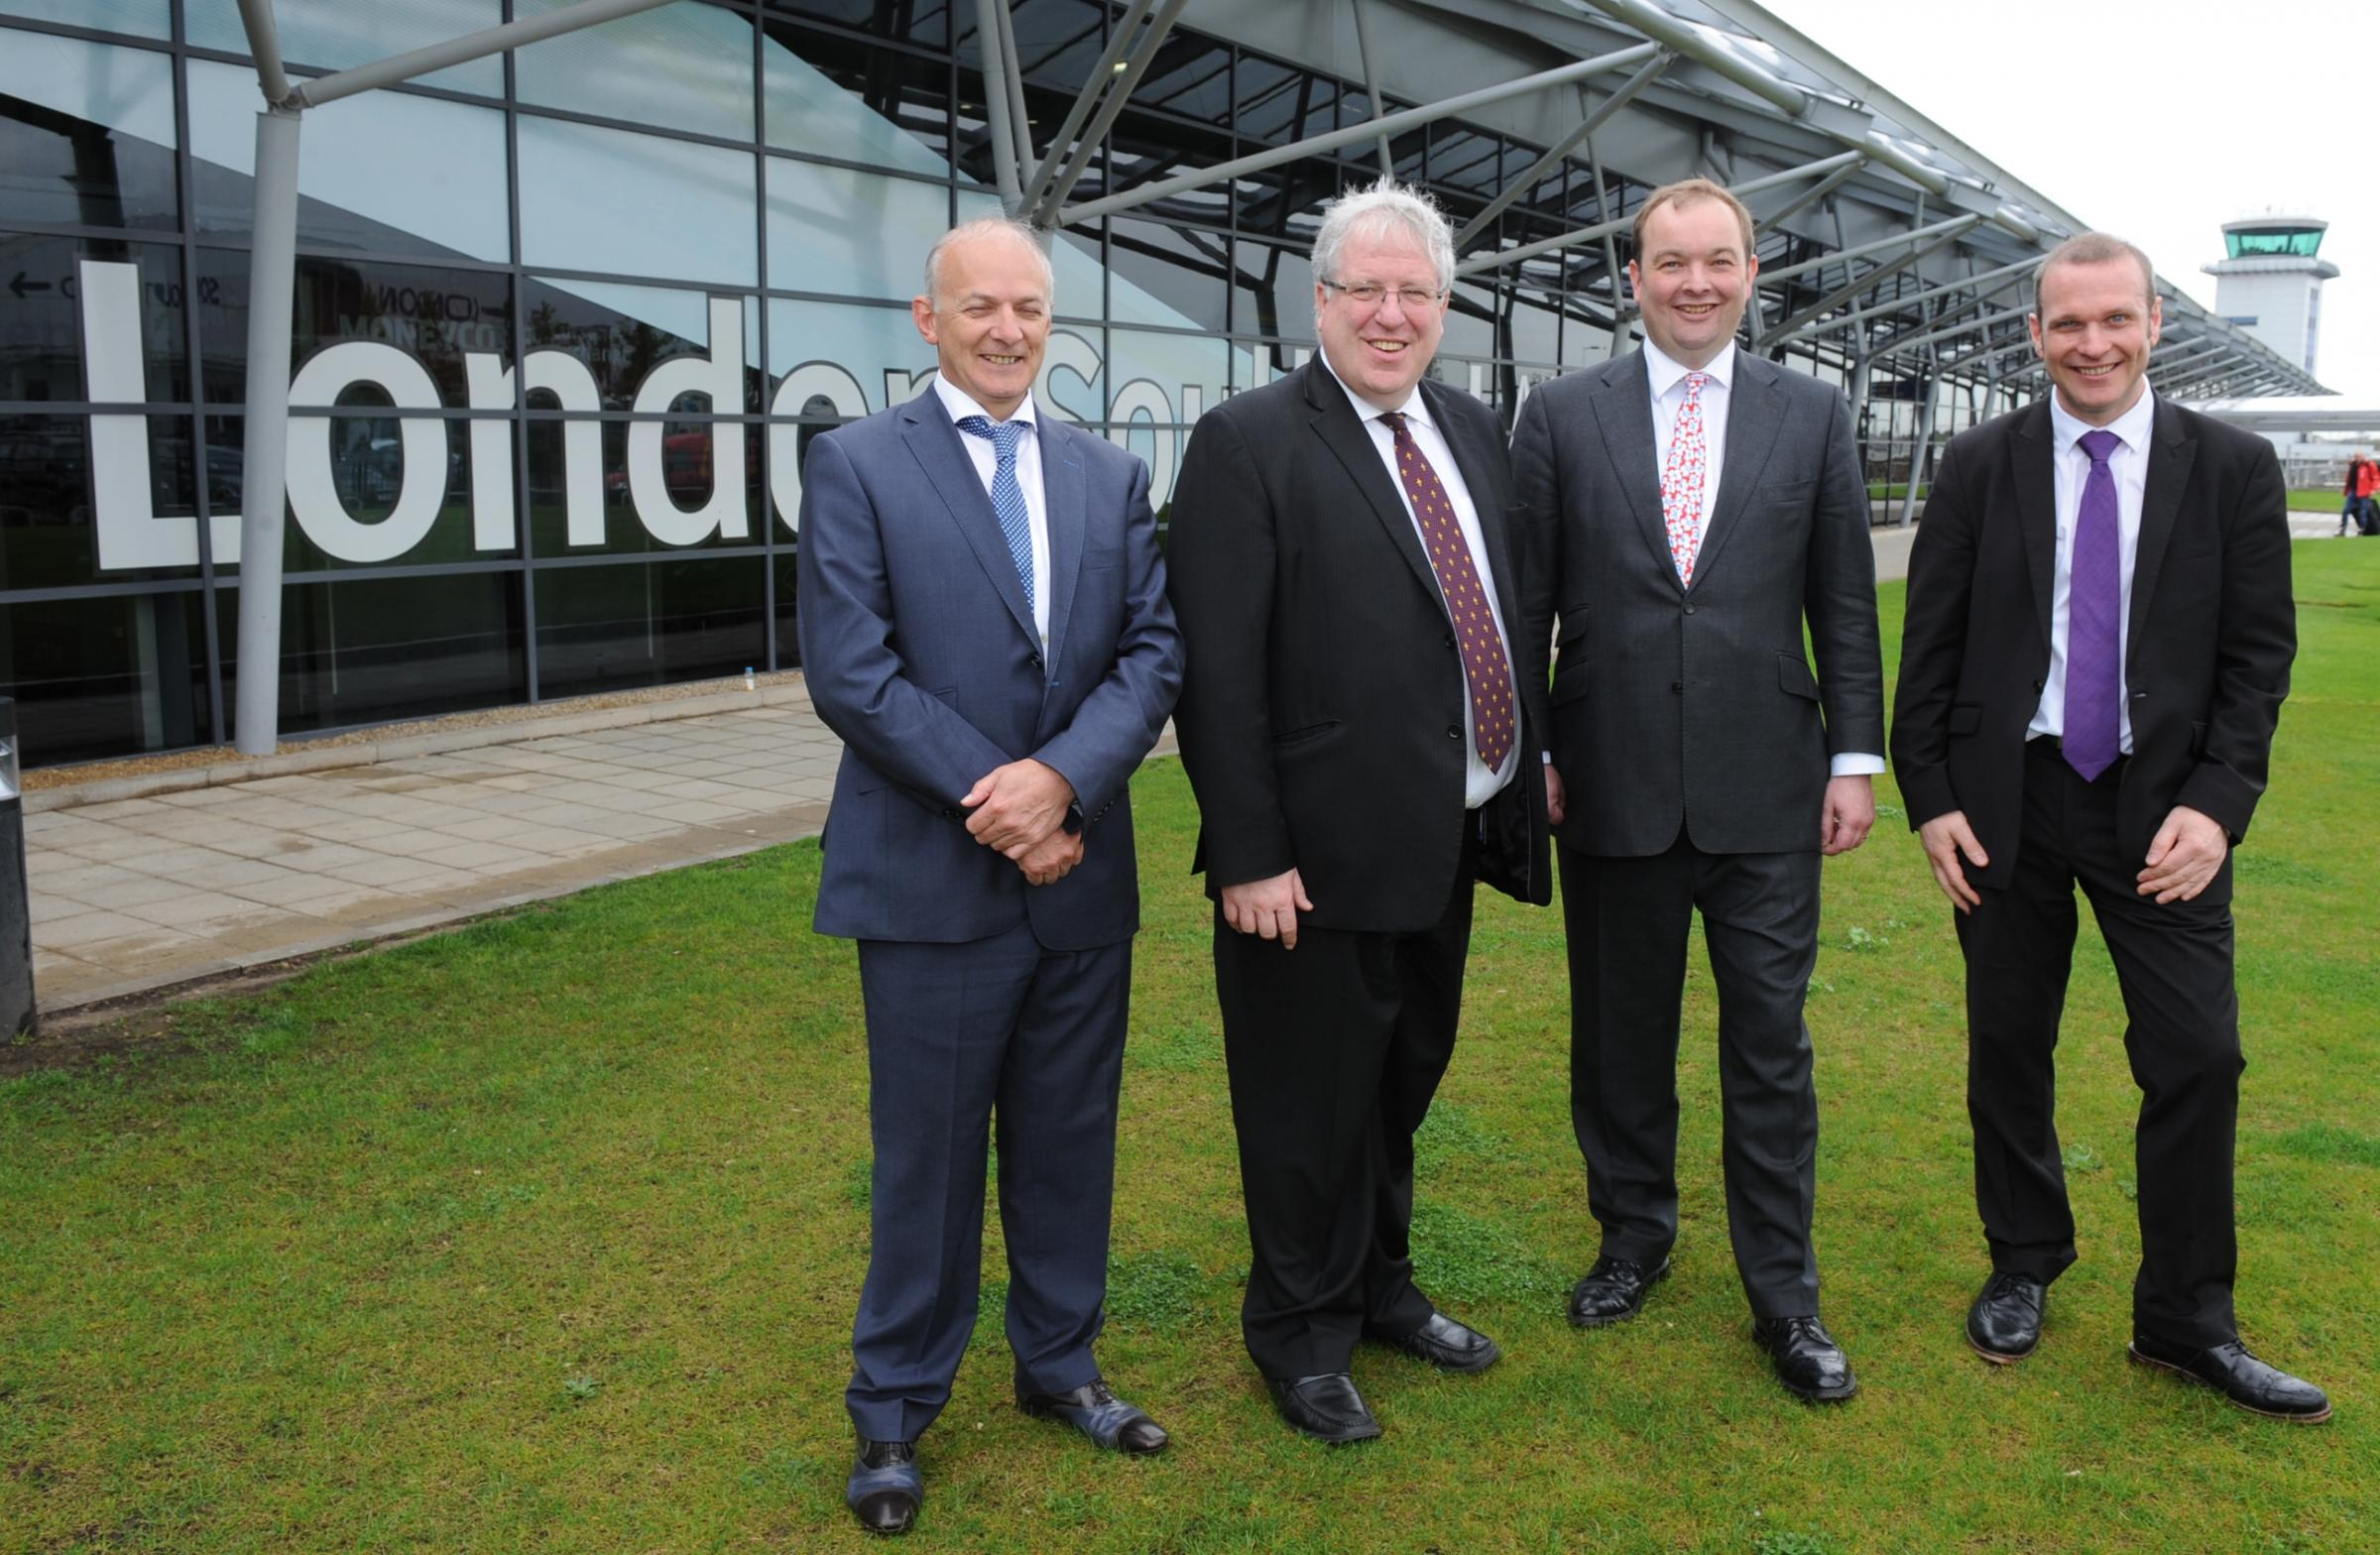 Stobart Air boss Andrew Tinkler, Transport Secretary Patrick McLoughlin, Rochford and Southend East MP James Duddridge and David Lister, the airport's operations director